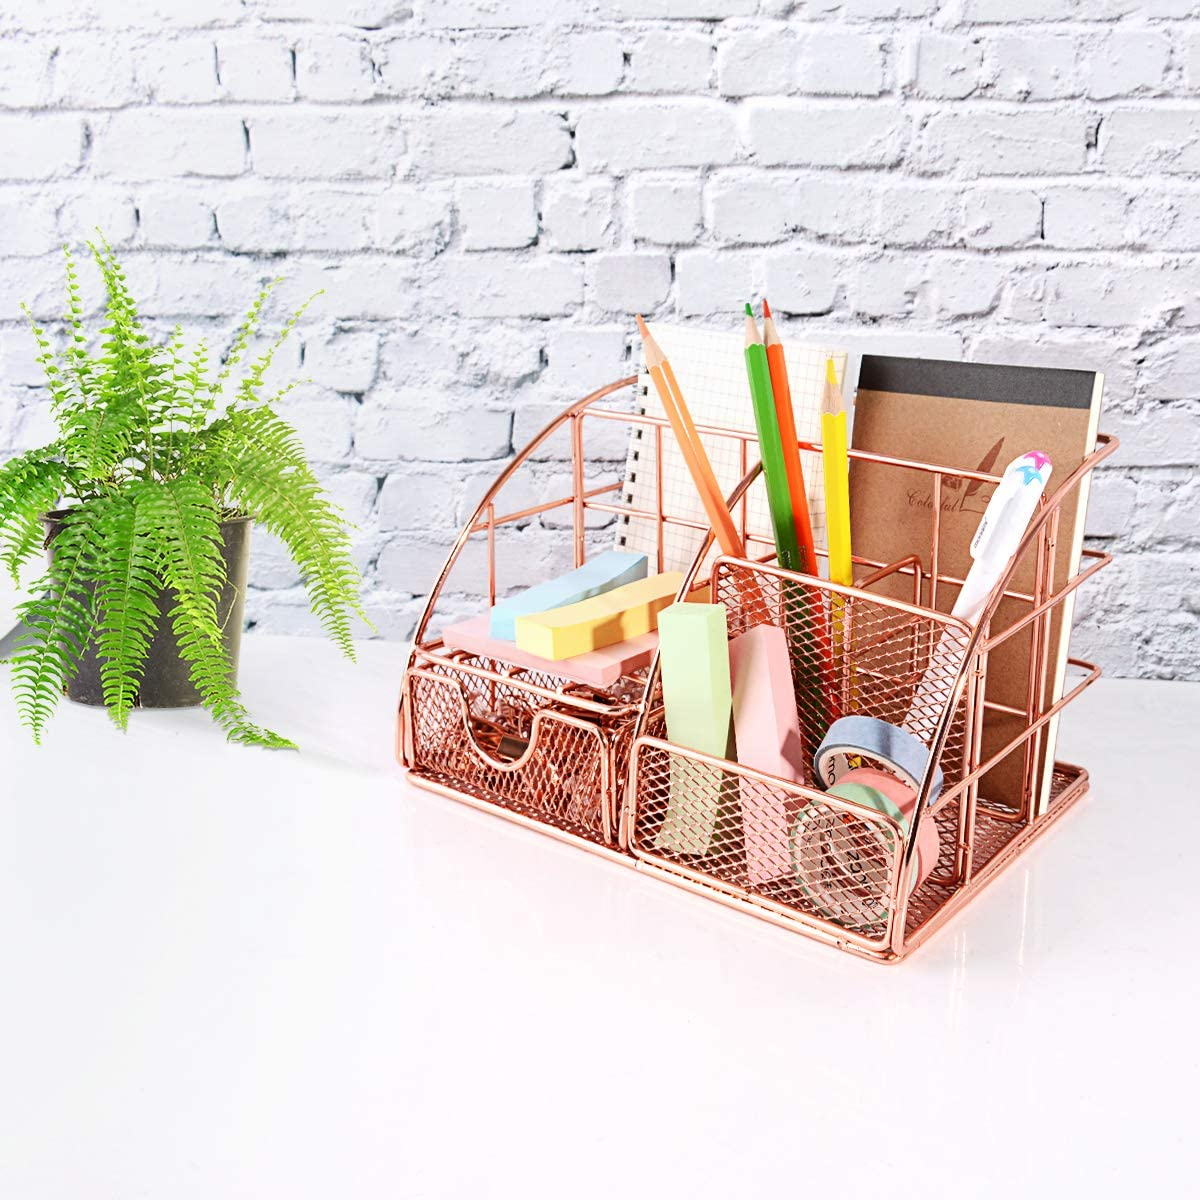 Home and Dorm Mesh Desk Accessories with Drawer for Office Desktop Organizer Decorative for Women Cute Desk Organizer Caddy Rose Gold Home Office Supplies Holder